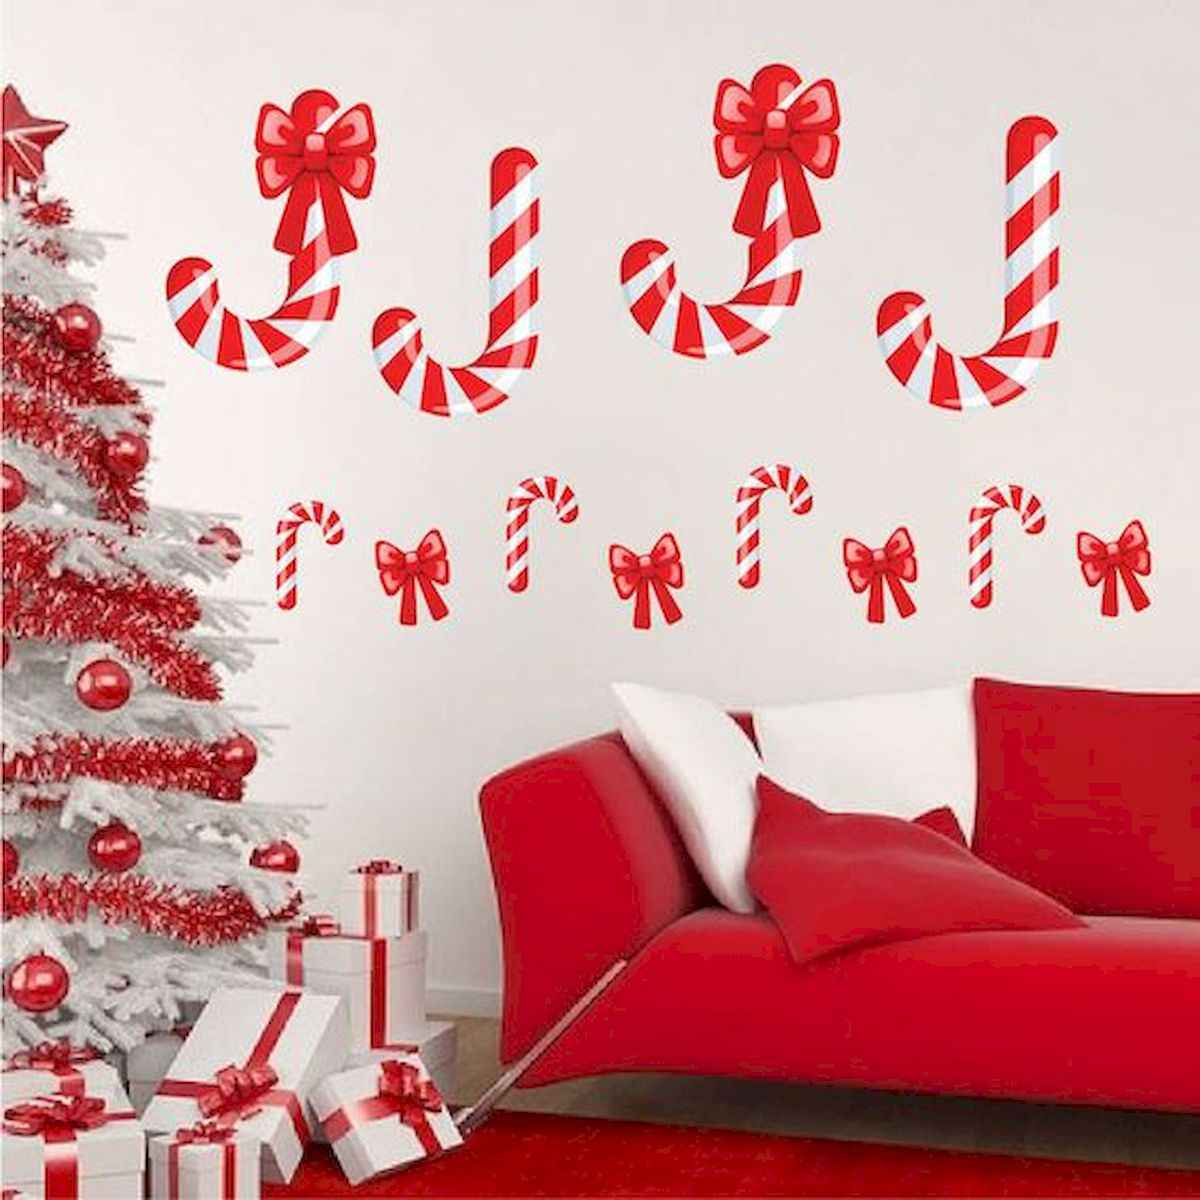 35 awesome apartment christmas decorations ideas (7)